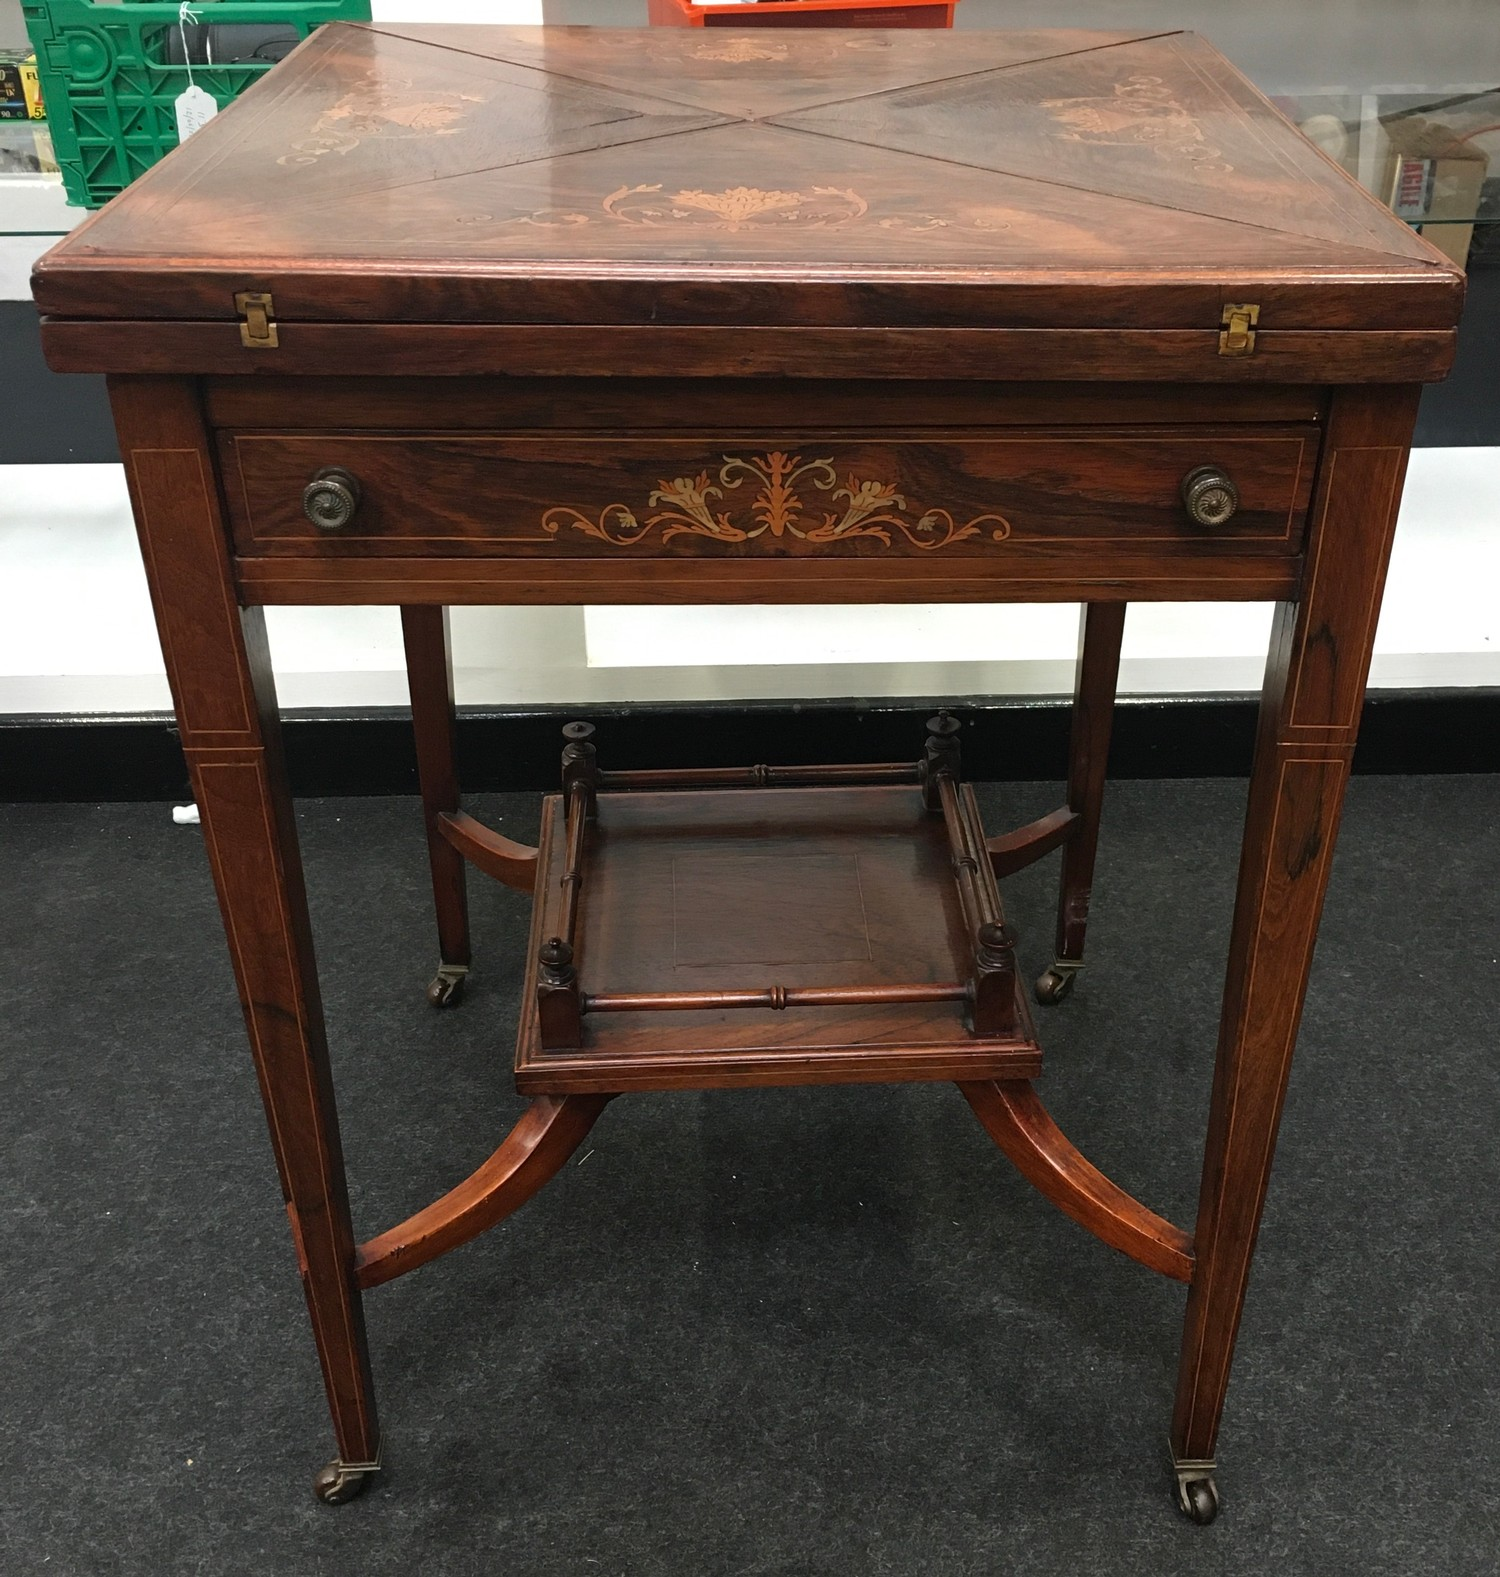 Edwardian inlaid rosewood envelope card table. The top decorated with urns and scrolled flowers,